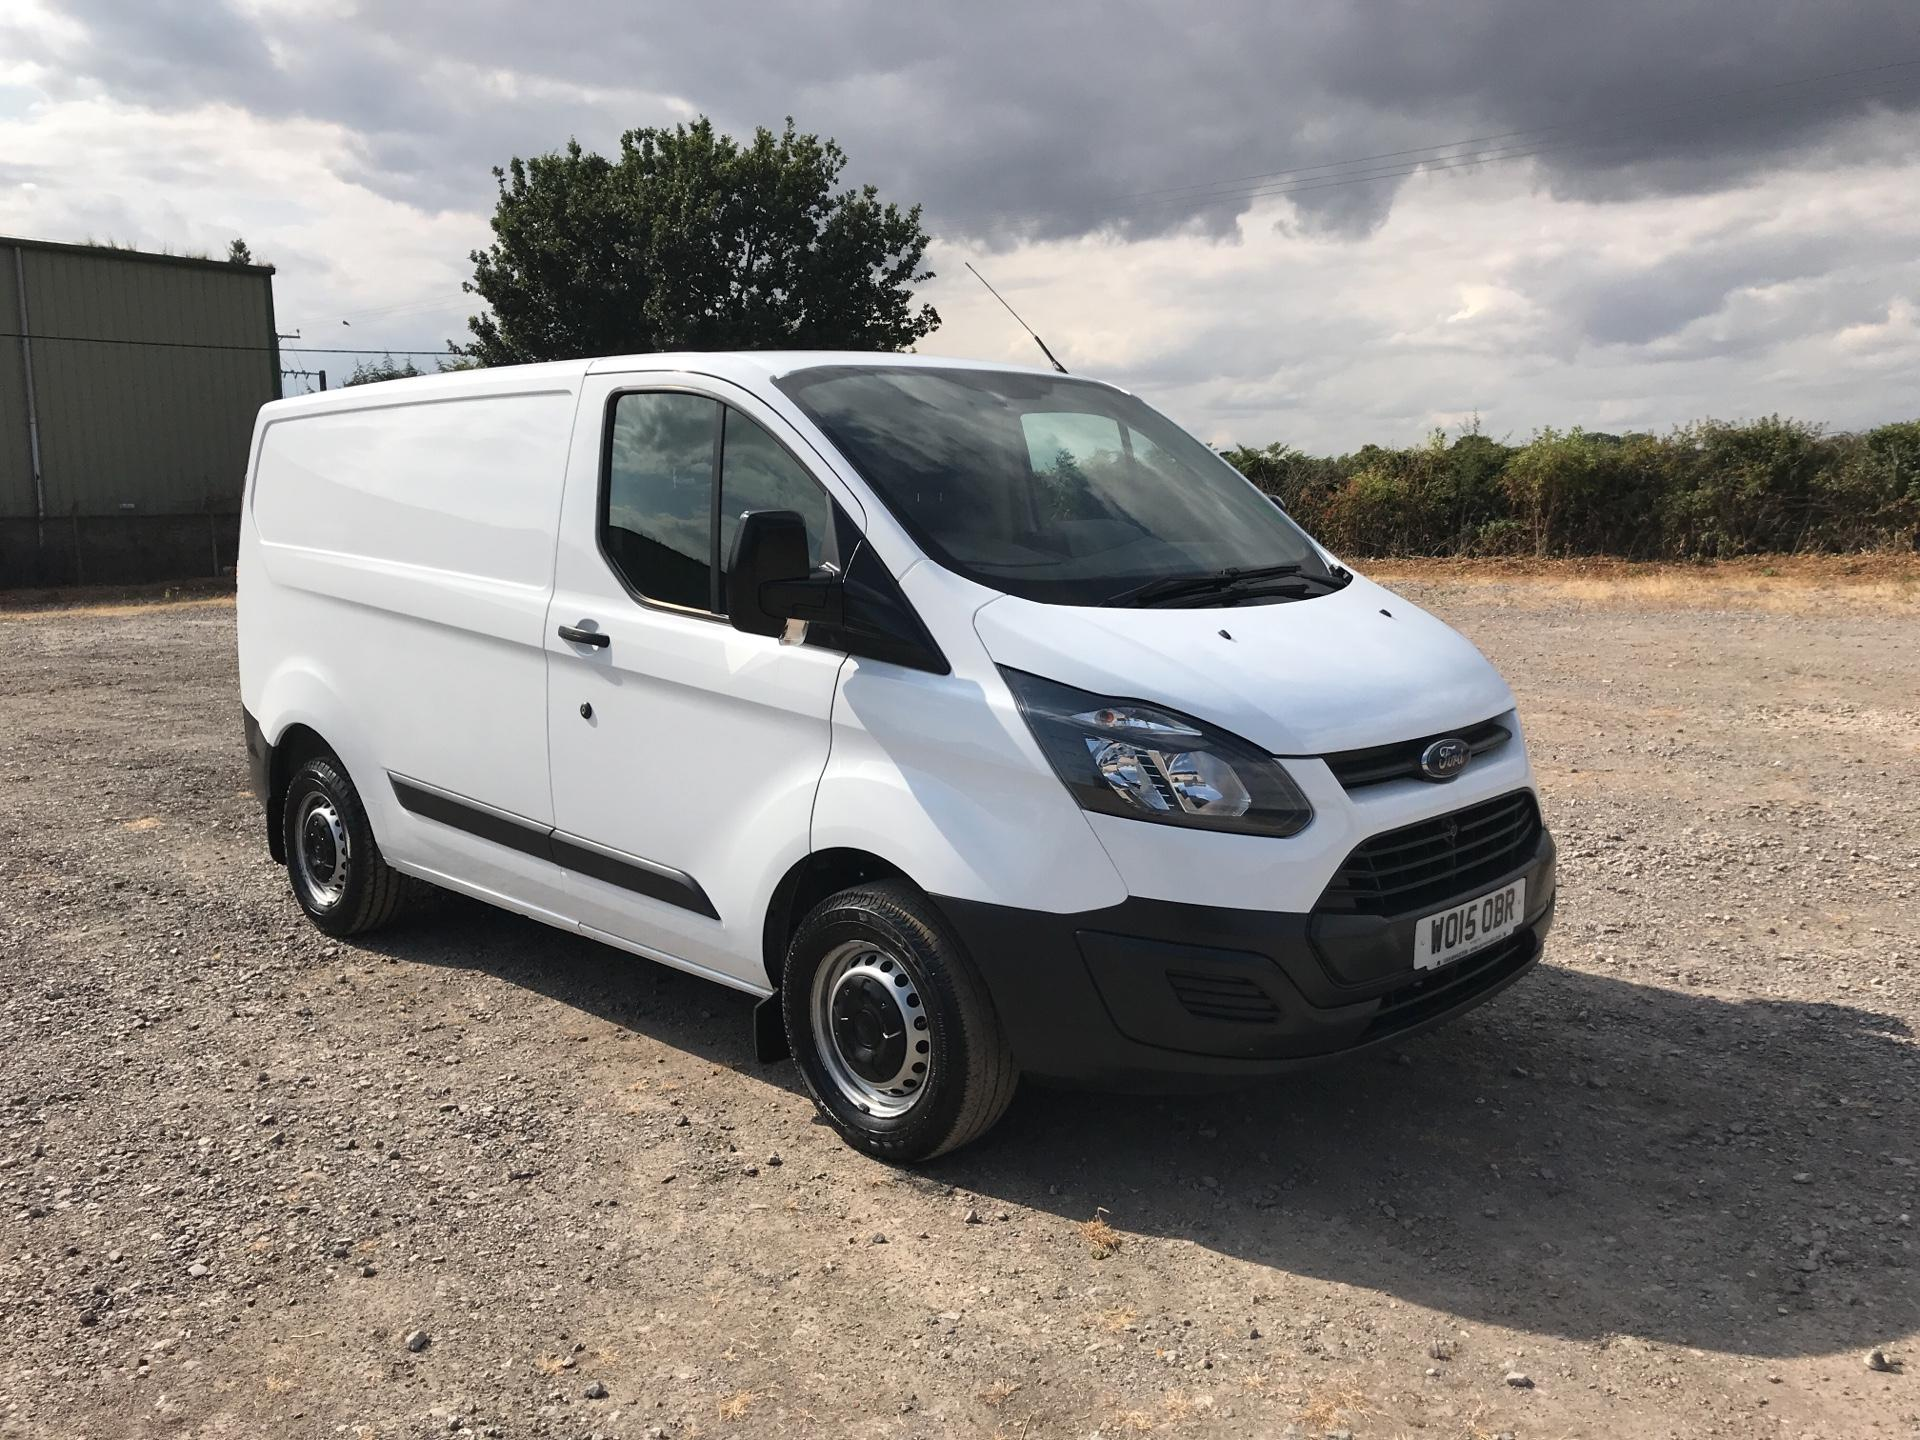 2015 Ford Transit Custom 290 L1 DIESEL FWD 2.2  TDCI 100PS LOW ROOF VAN EURO 5 (WO15OBR)